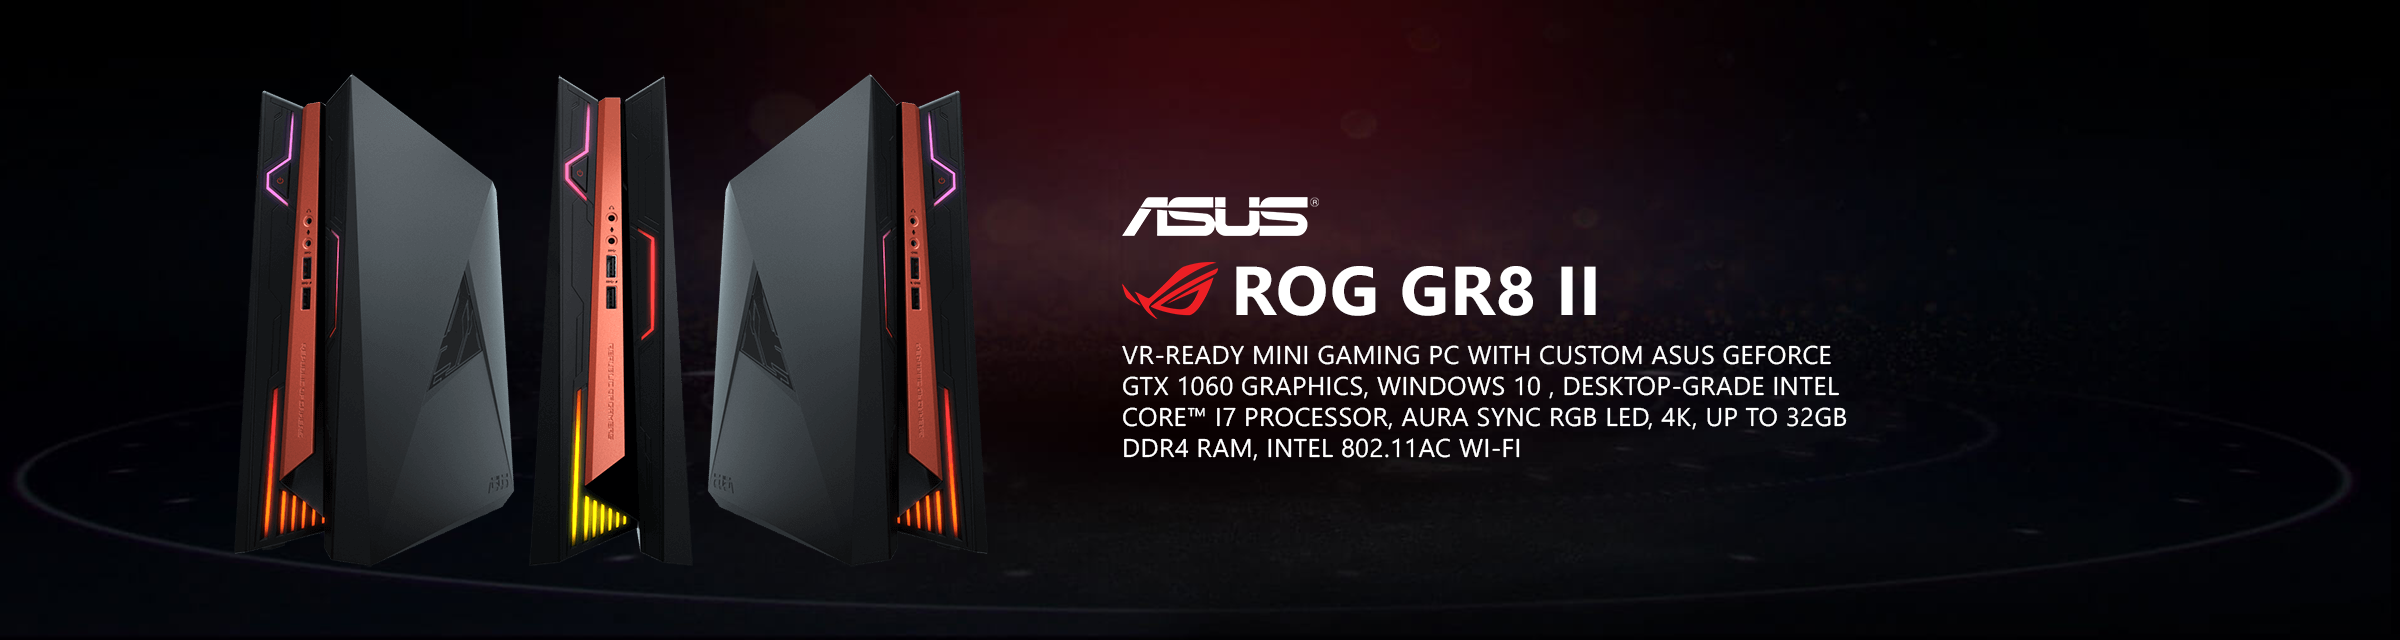 ASUS ROG GR8 II VR-Ready Mini Gaming PC